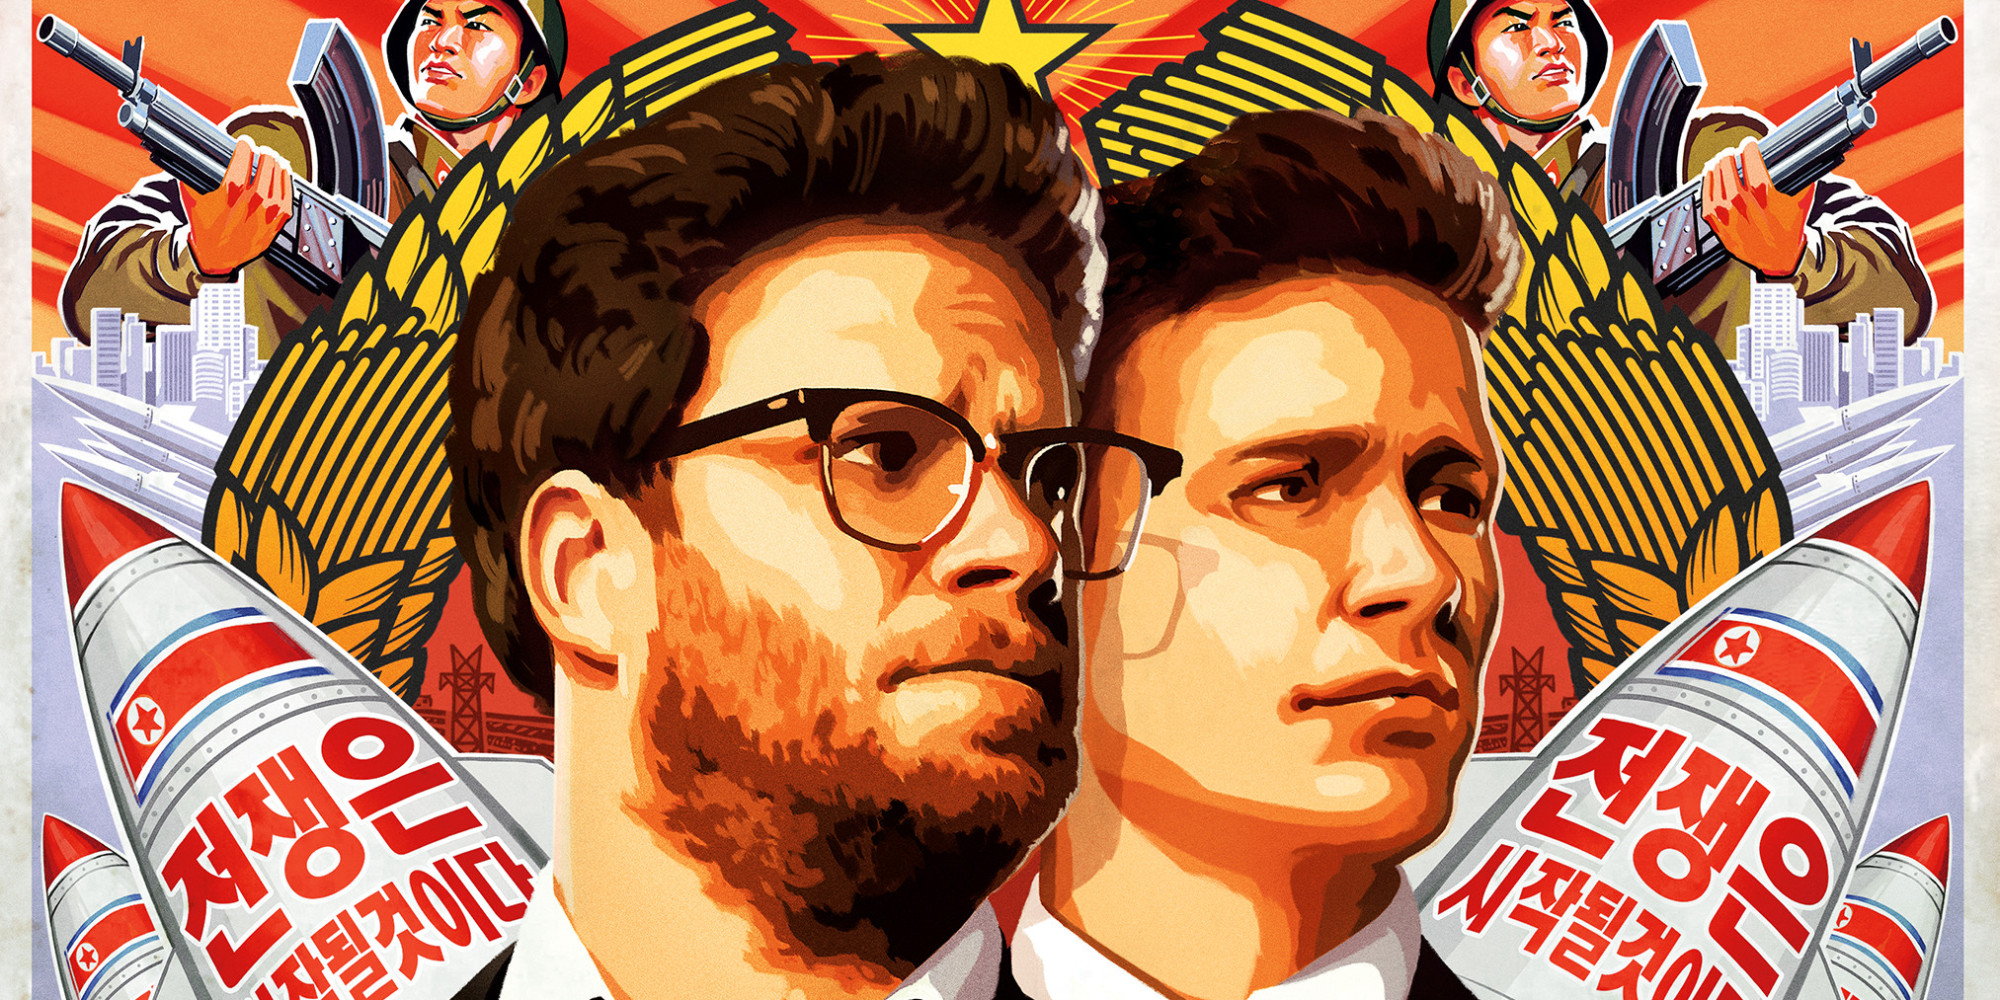 The Interview: A Movie Made for Friends